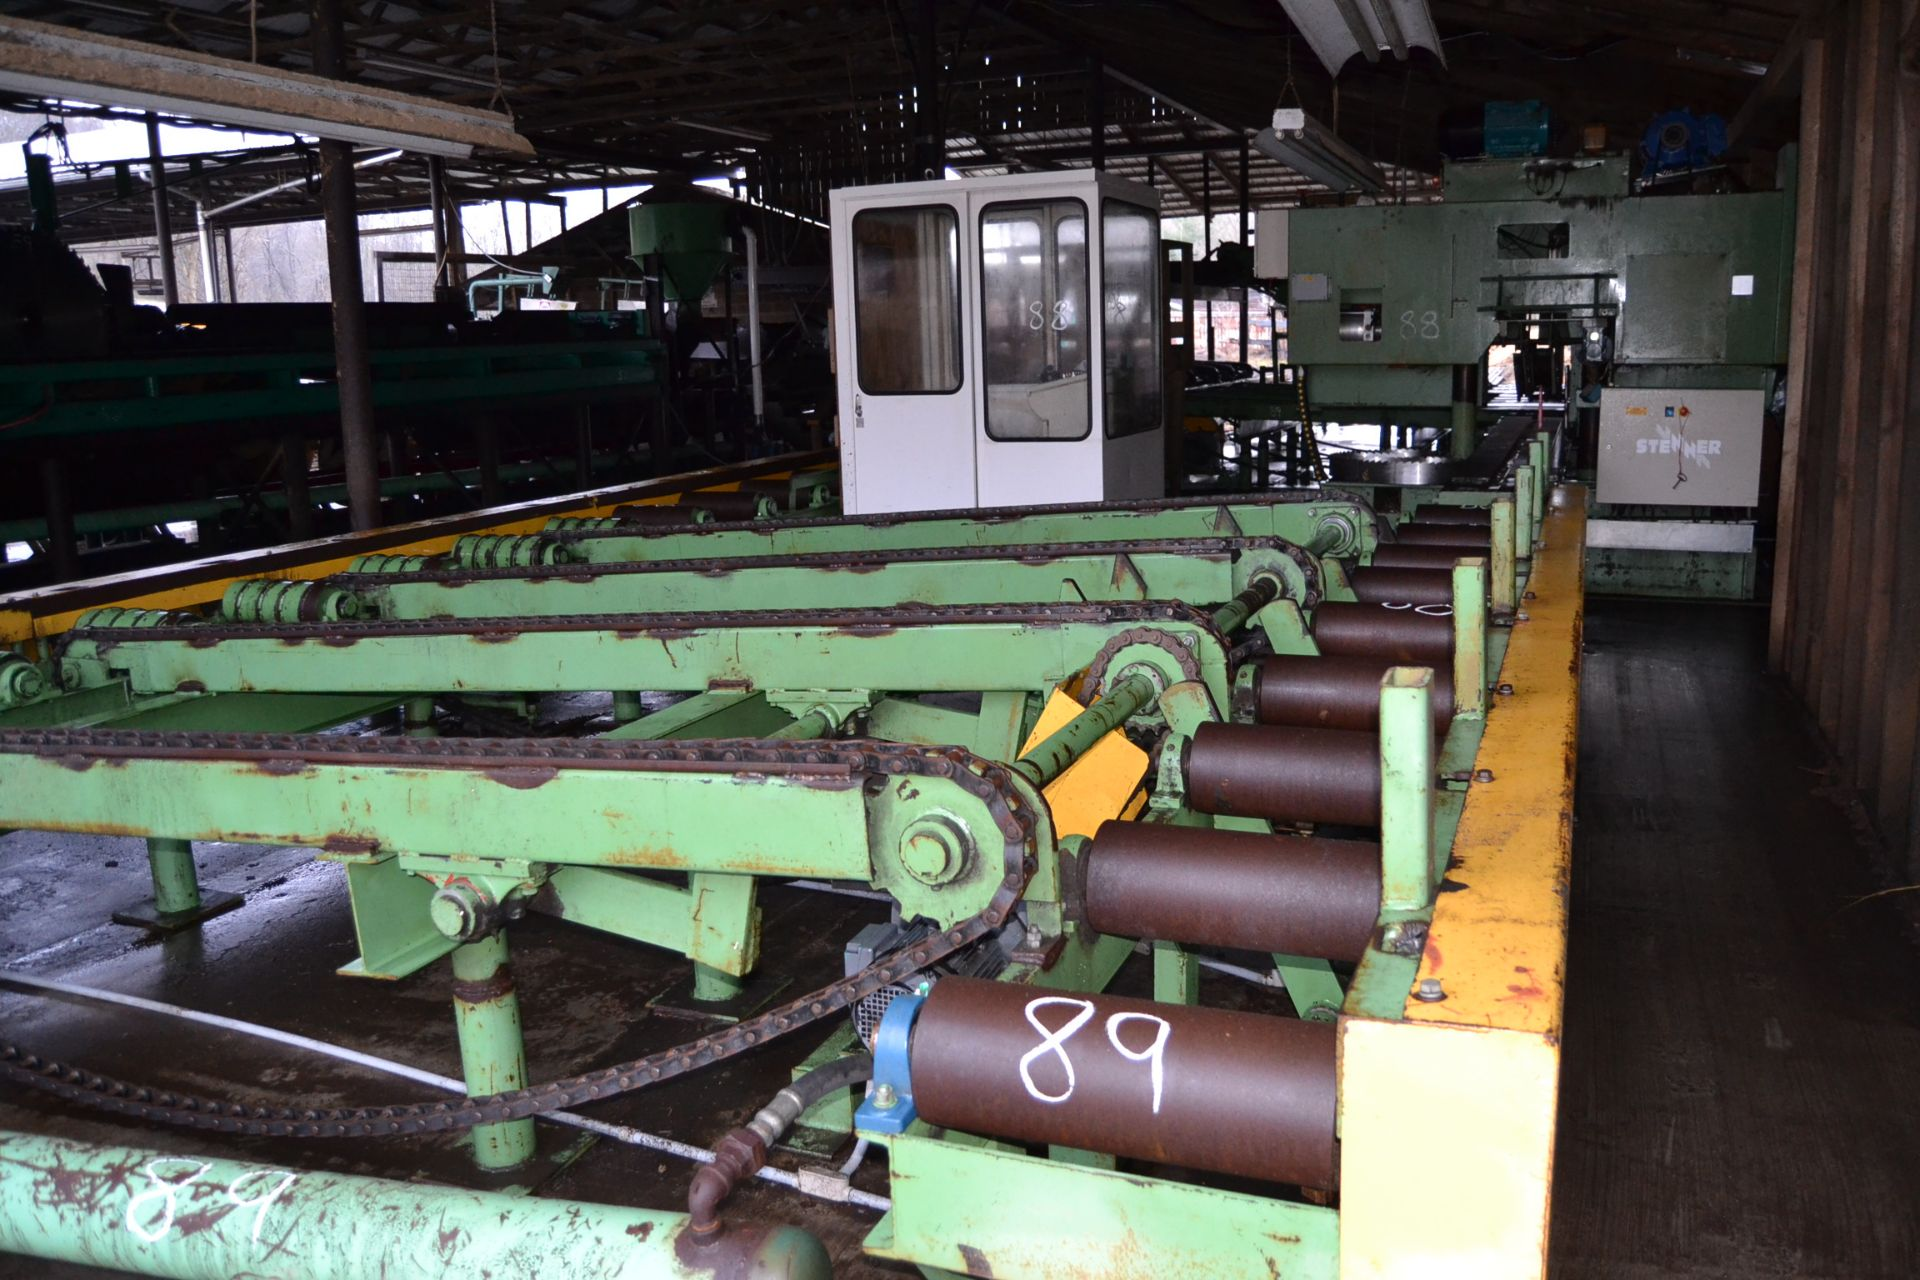 """Lot 89 - TURN A ROUND SYSTEM W/ 18""""X17' INFEED ROLLCASE W/ CANT POSITIONERS W/ 12' 4 STRAND INFEED TRANSFER"""